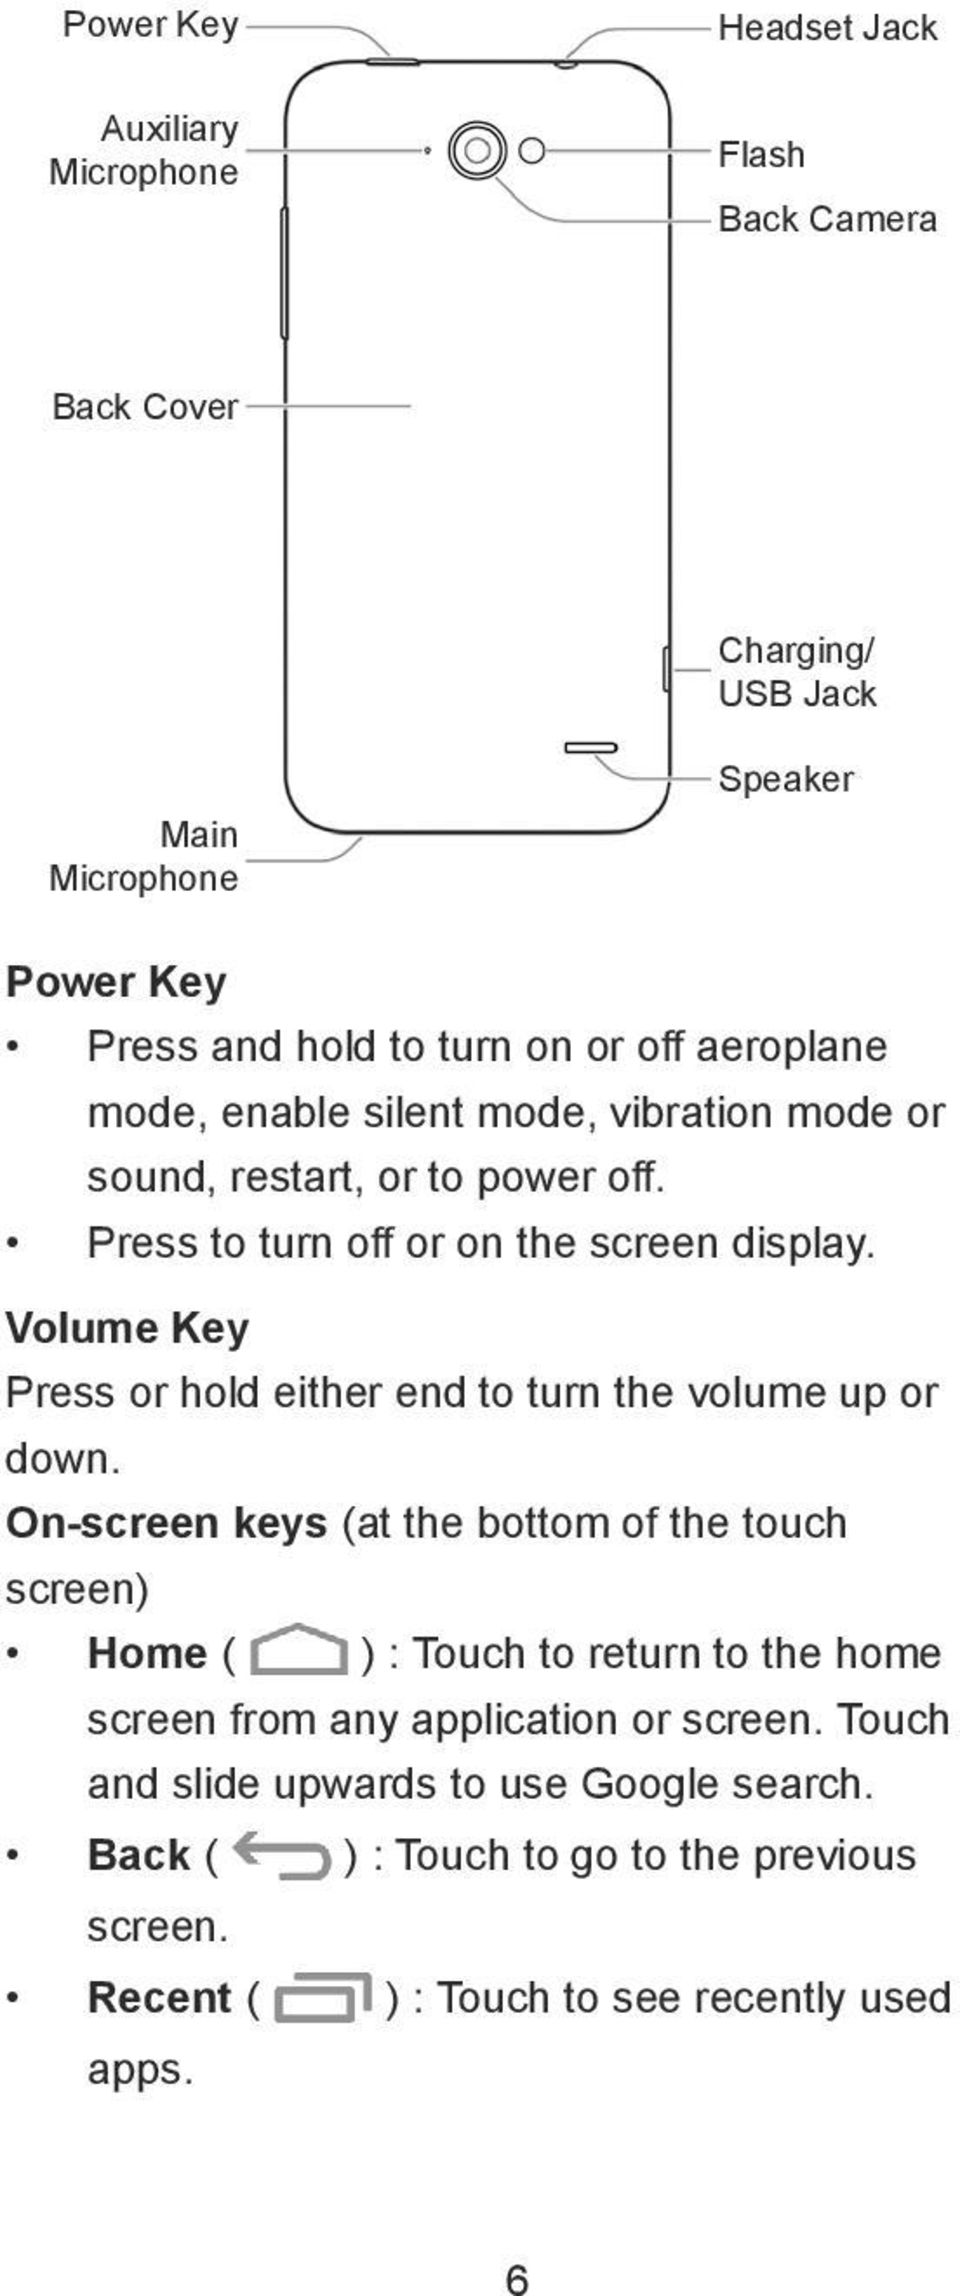 Volume Key Press or hold either end to turn the volume up or down.